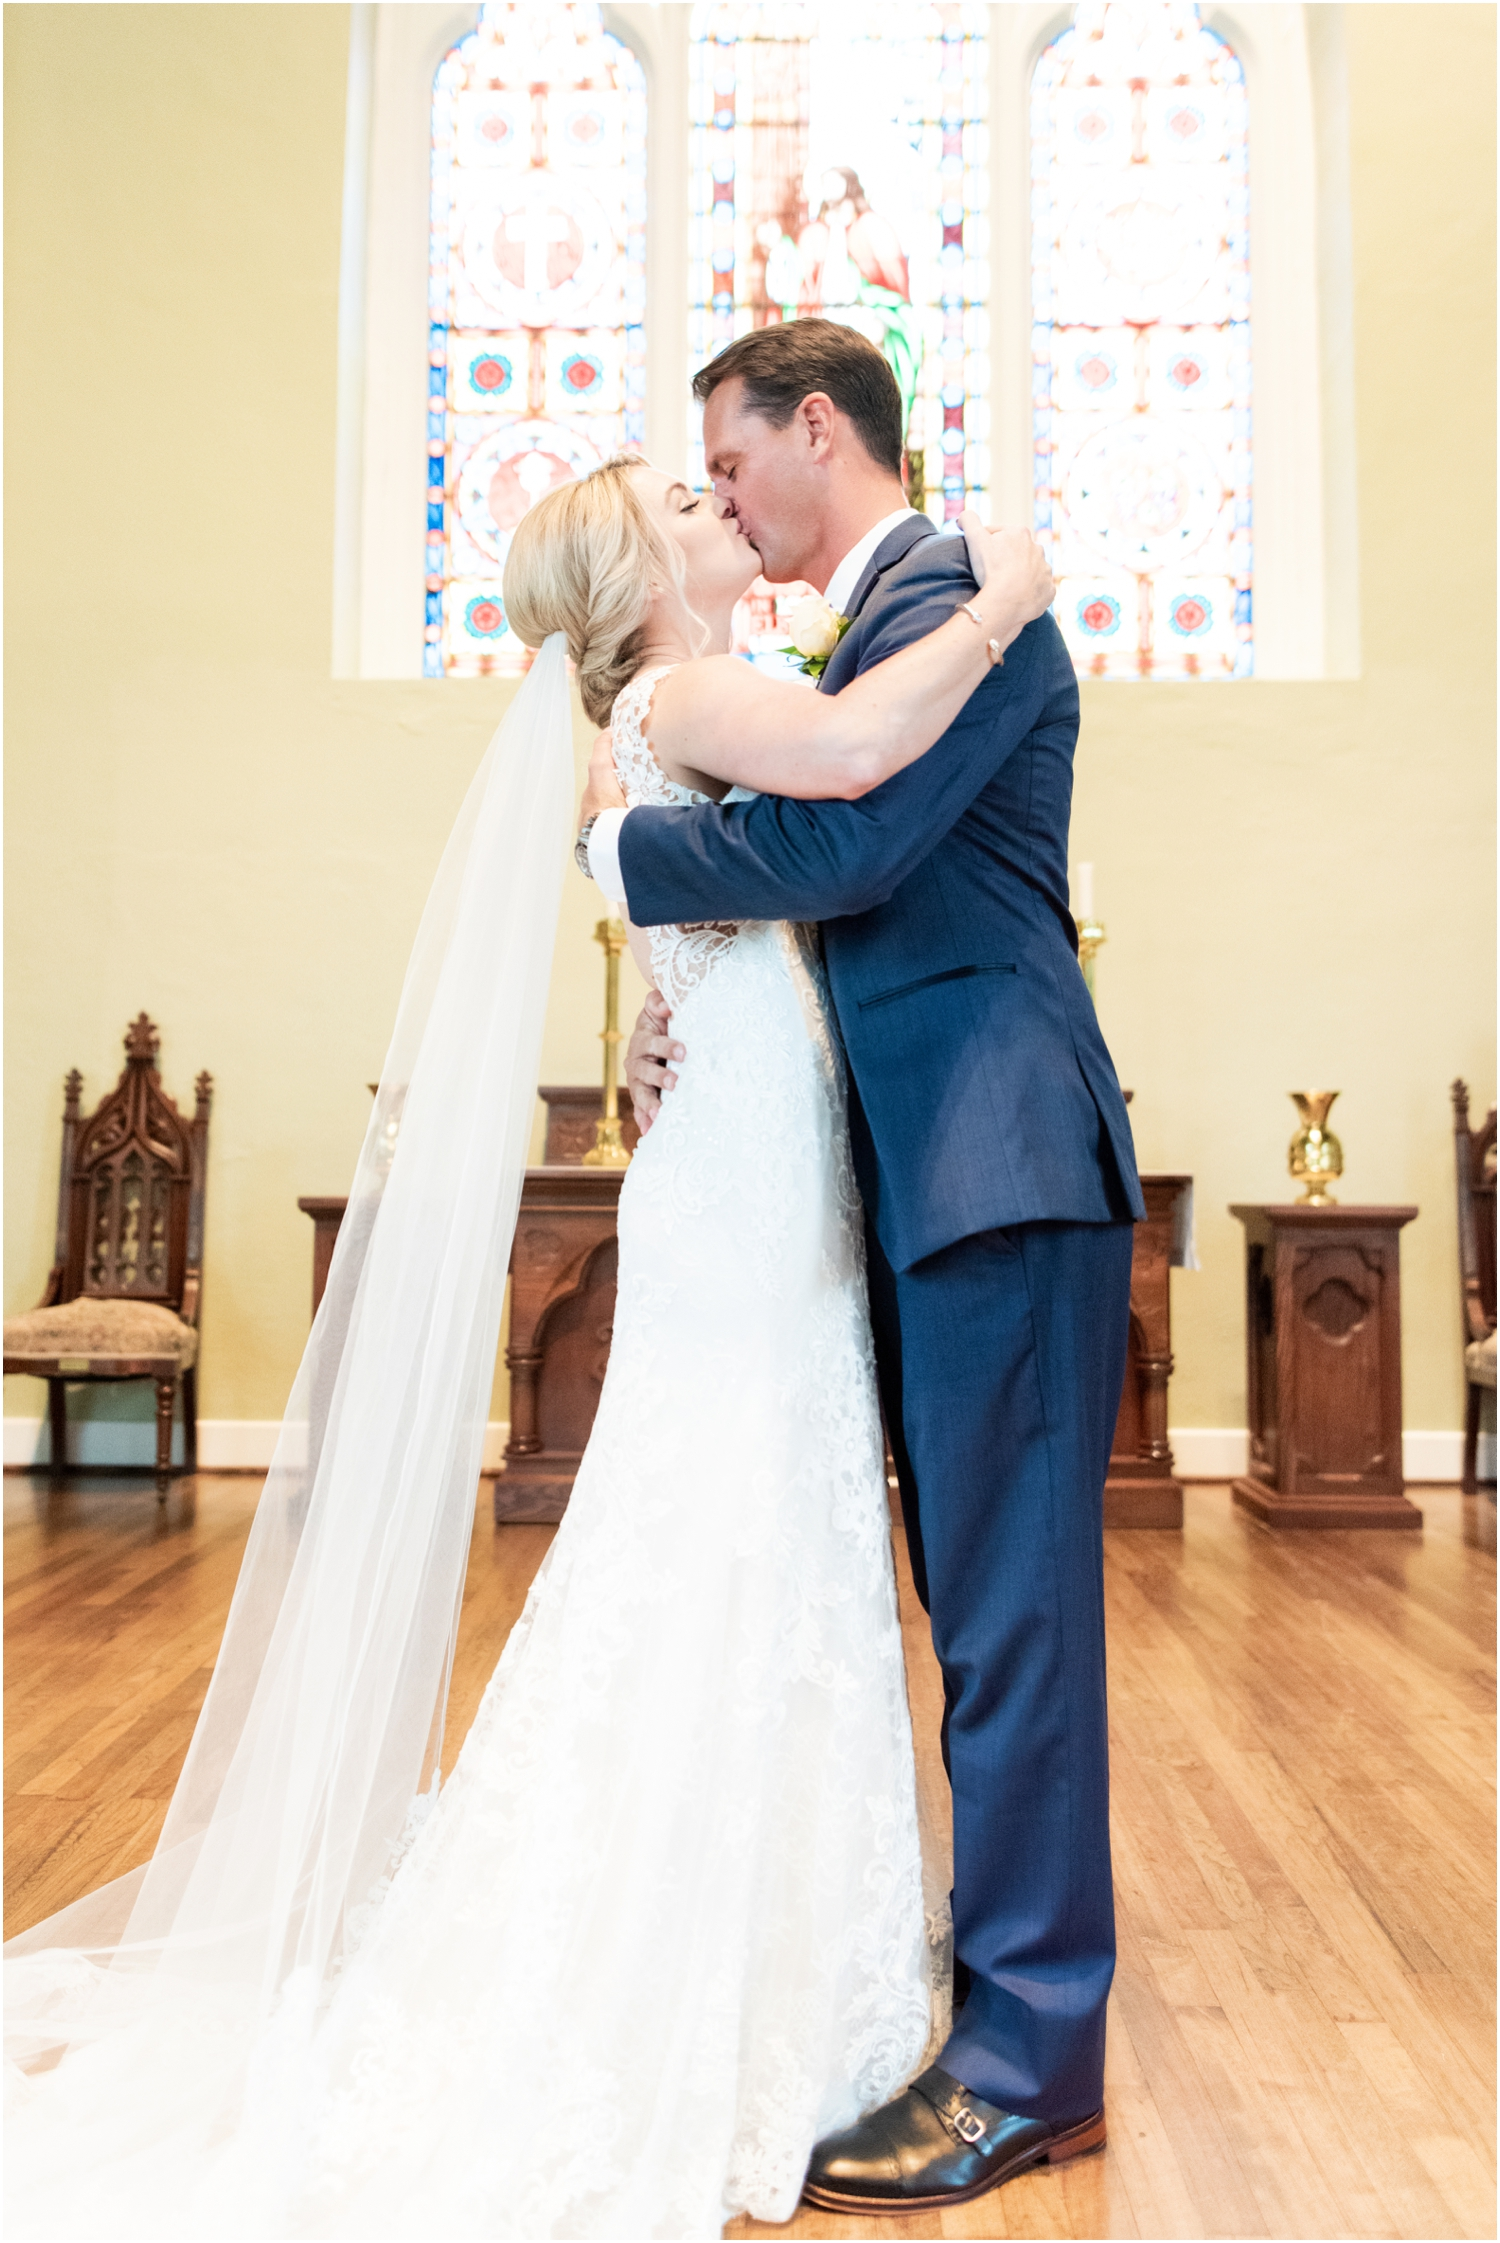 Old Christ Church Palafox Wharf Rainy Day Wedding Ceremony